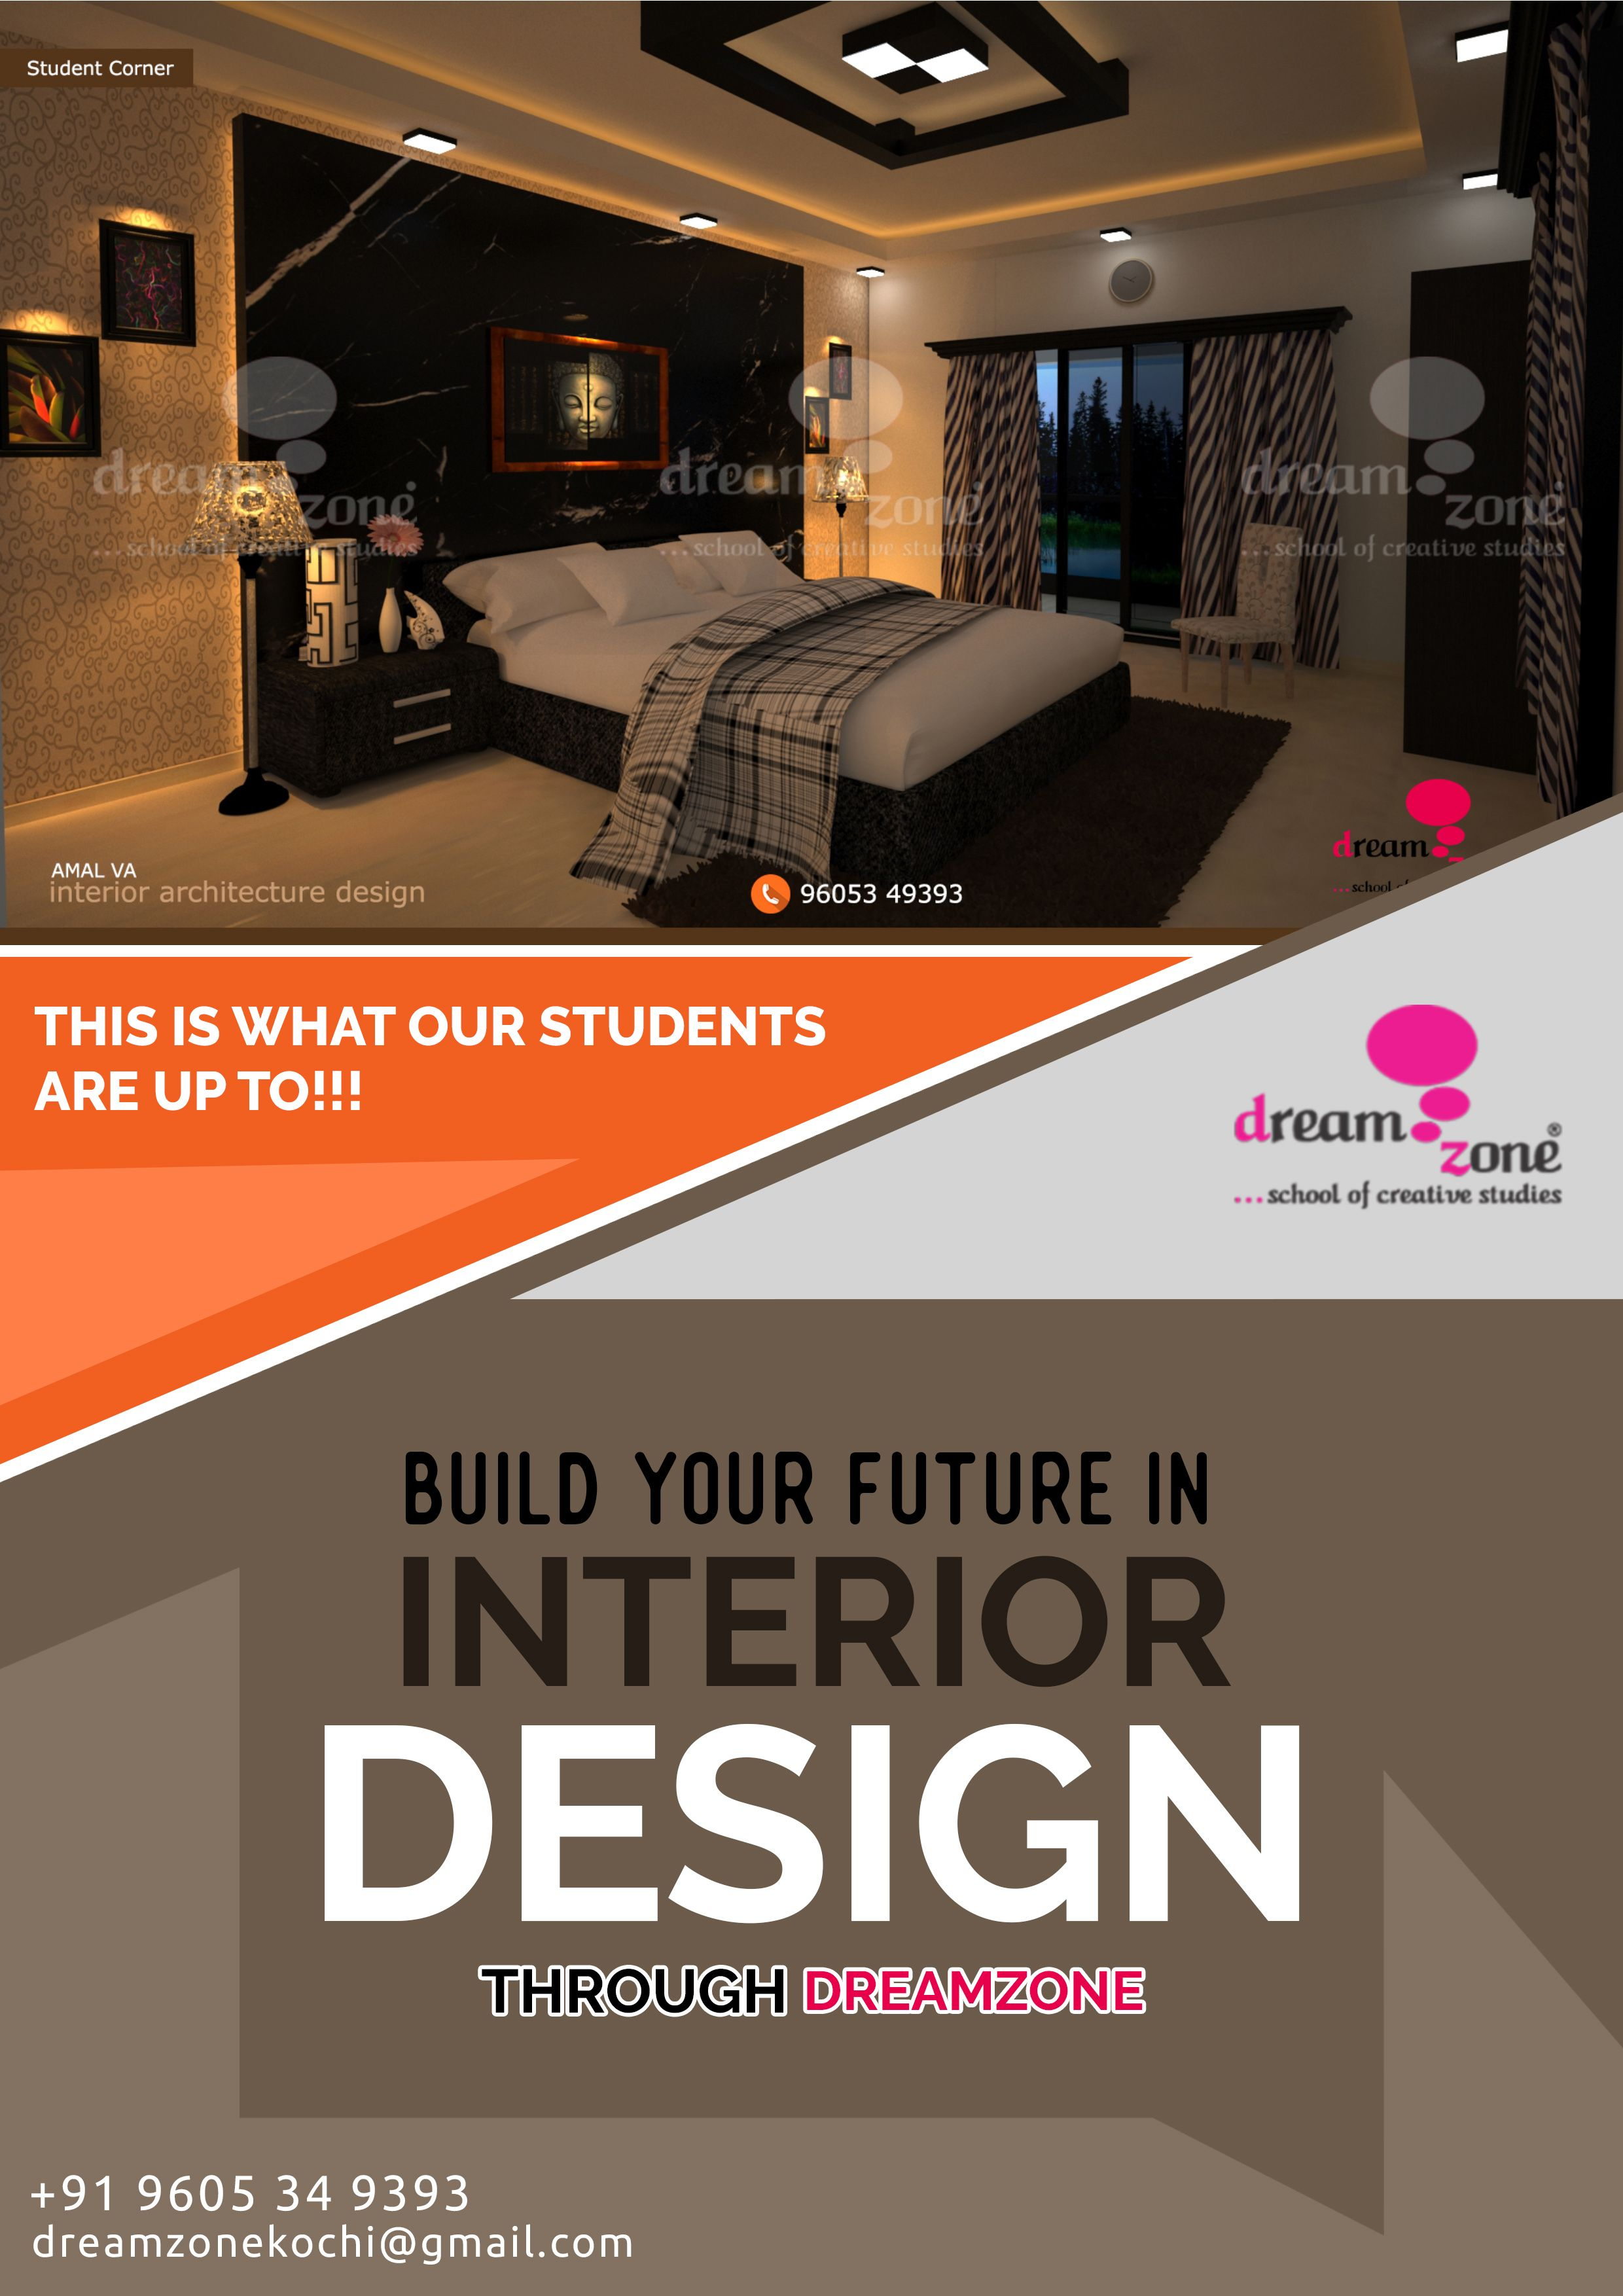 Interior Designers Make Interior Spaces Functional Safe And